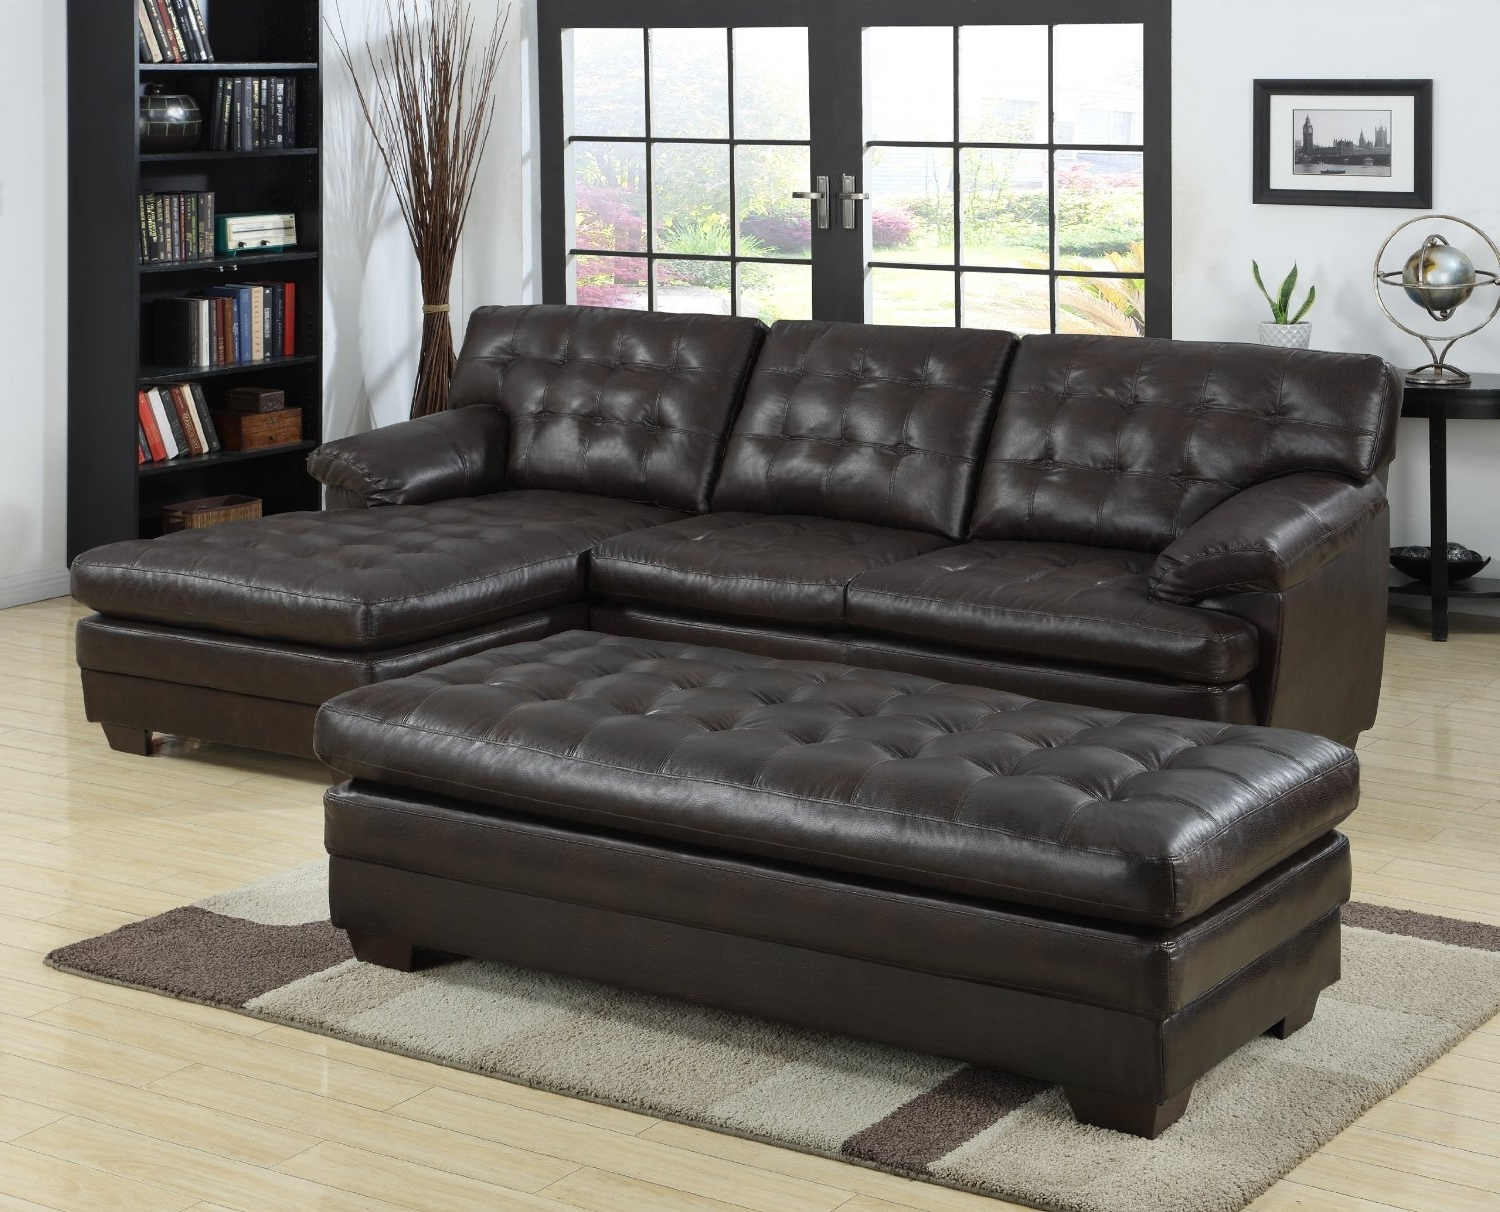 Sectional Sofas With Chaise Lounge And Ottoman With Regard To Recent Black Tufted Leather Sectional Sofa With Chaise And Bench Seat (View 5 of 15)